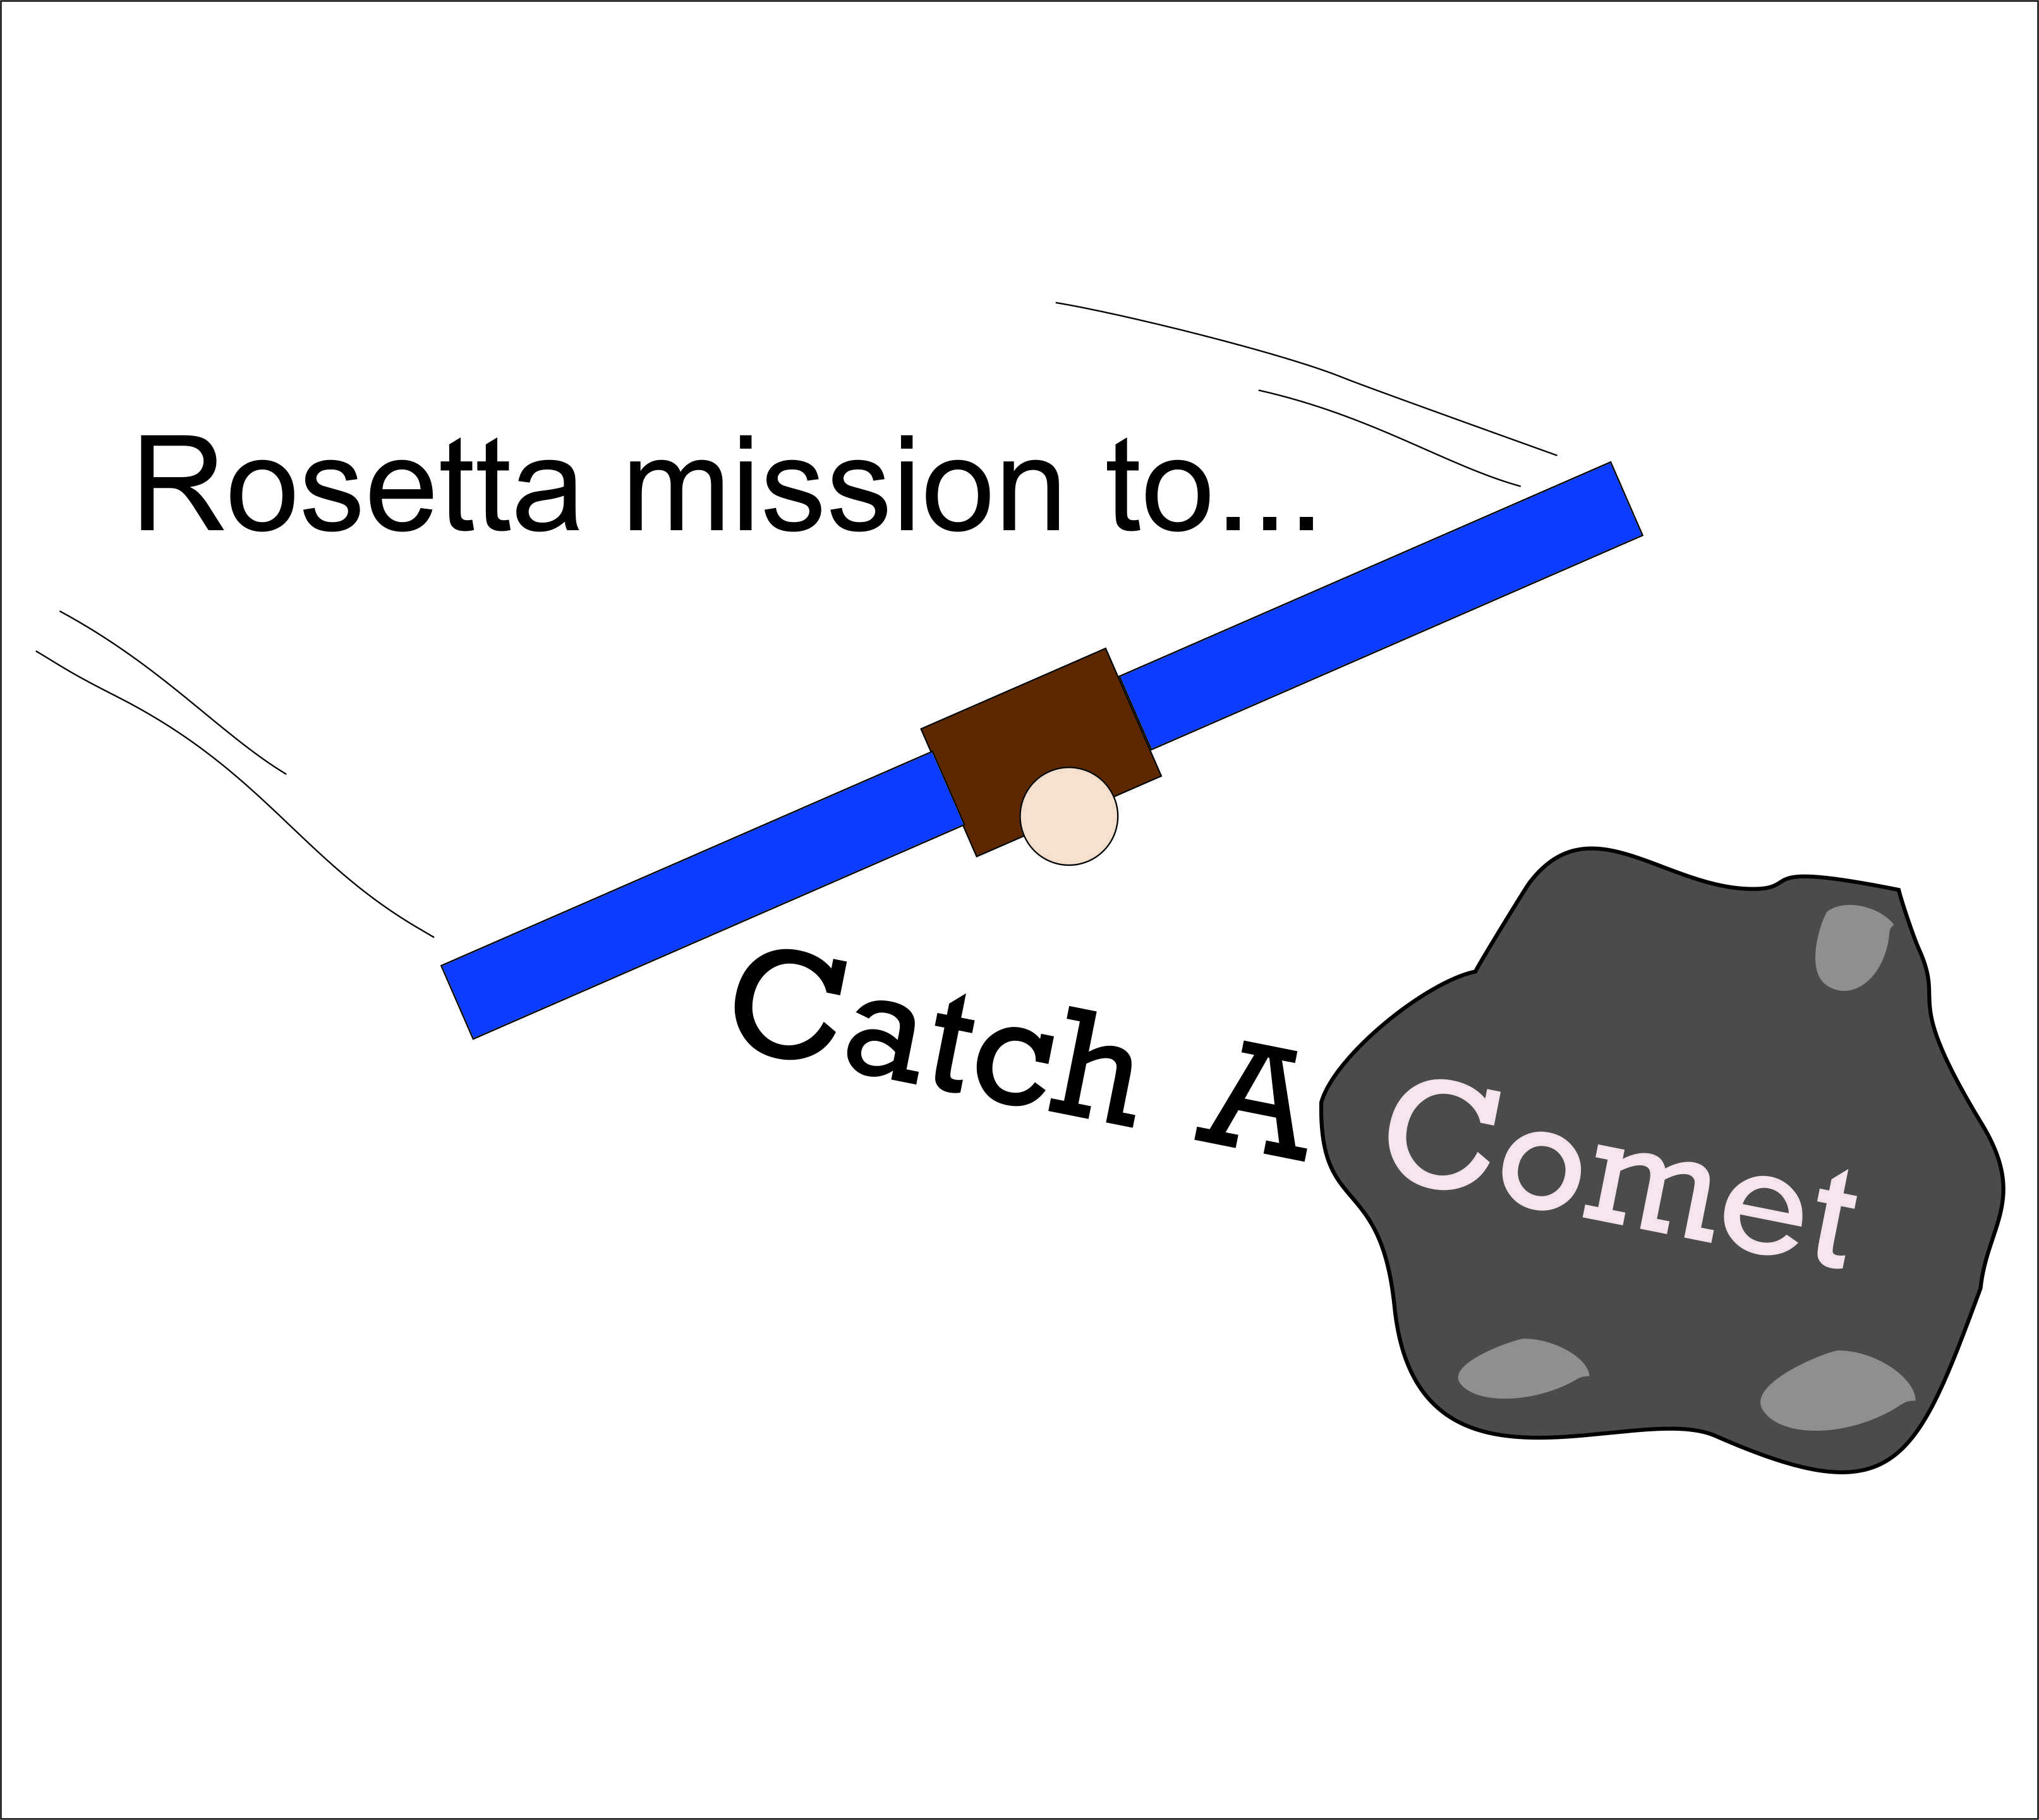 Catch A Comet at The Royal Society Summer Exhibition